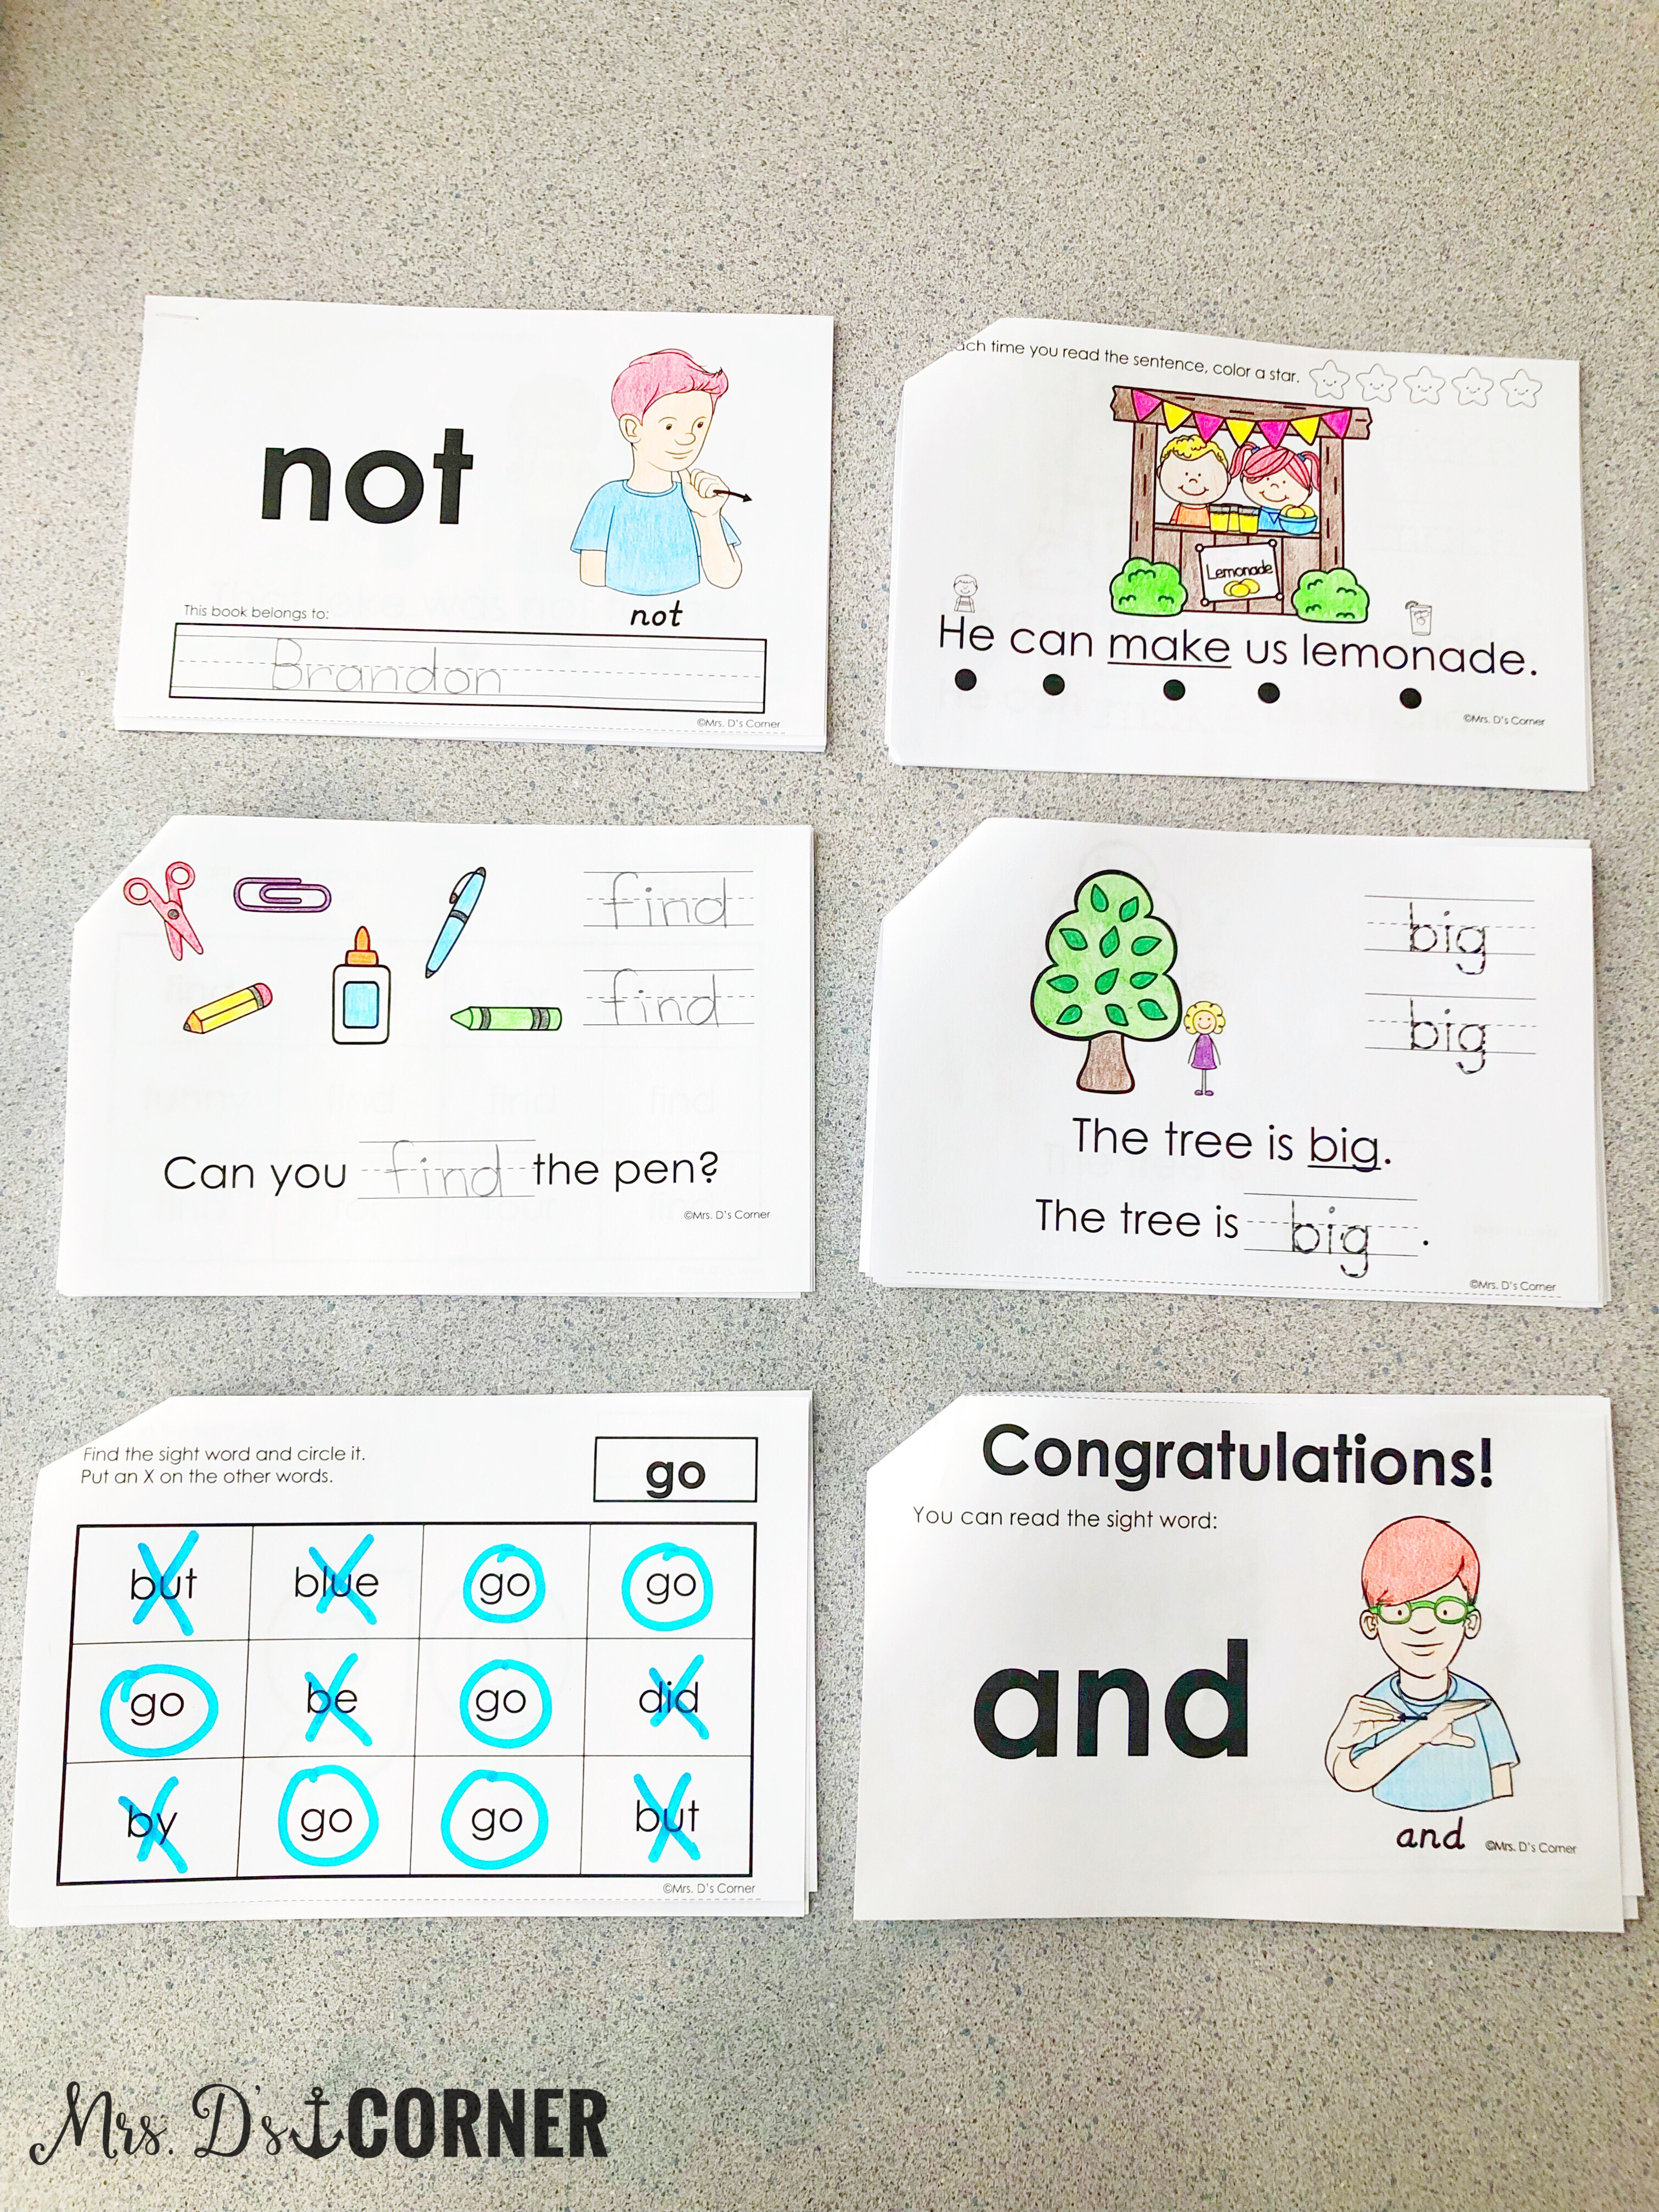 photo regarding Sight Word Book Printable named Printable, Interactive Sight Term Guides for Exclusive Ed - Mrs